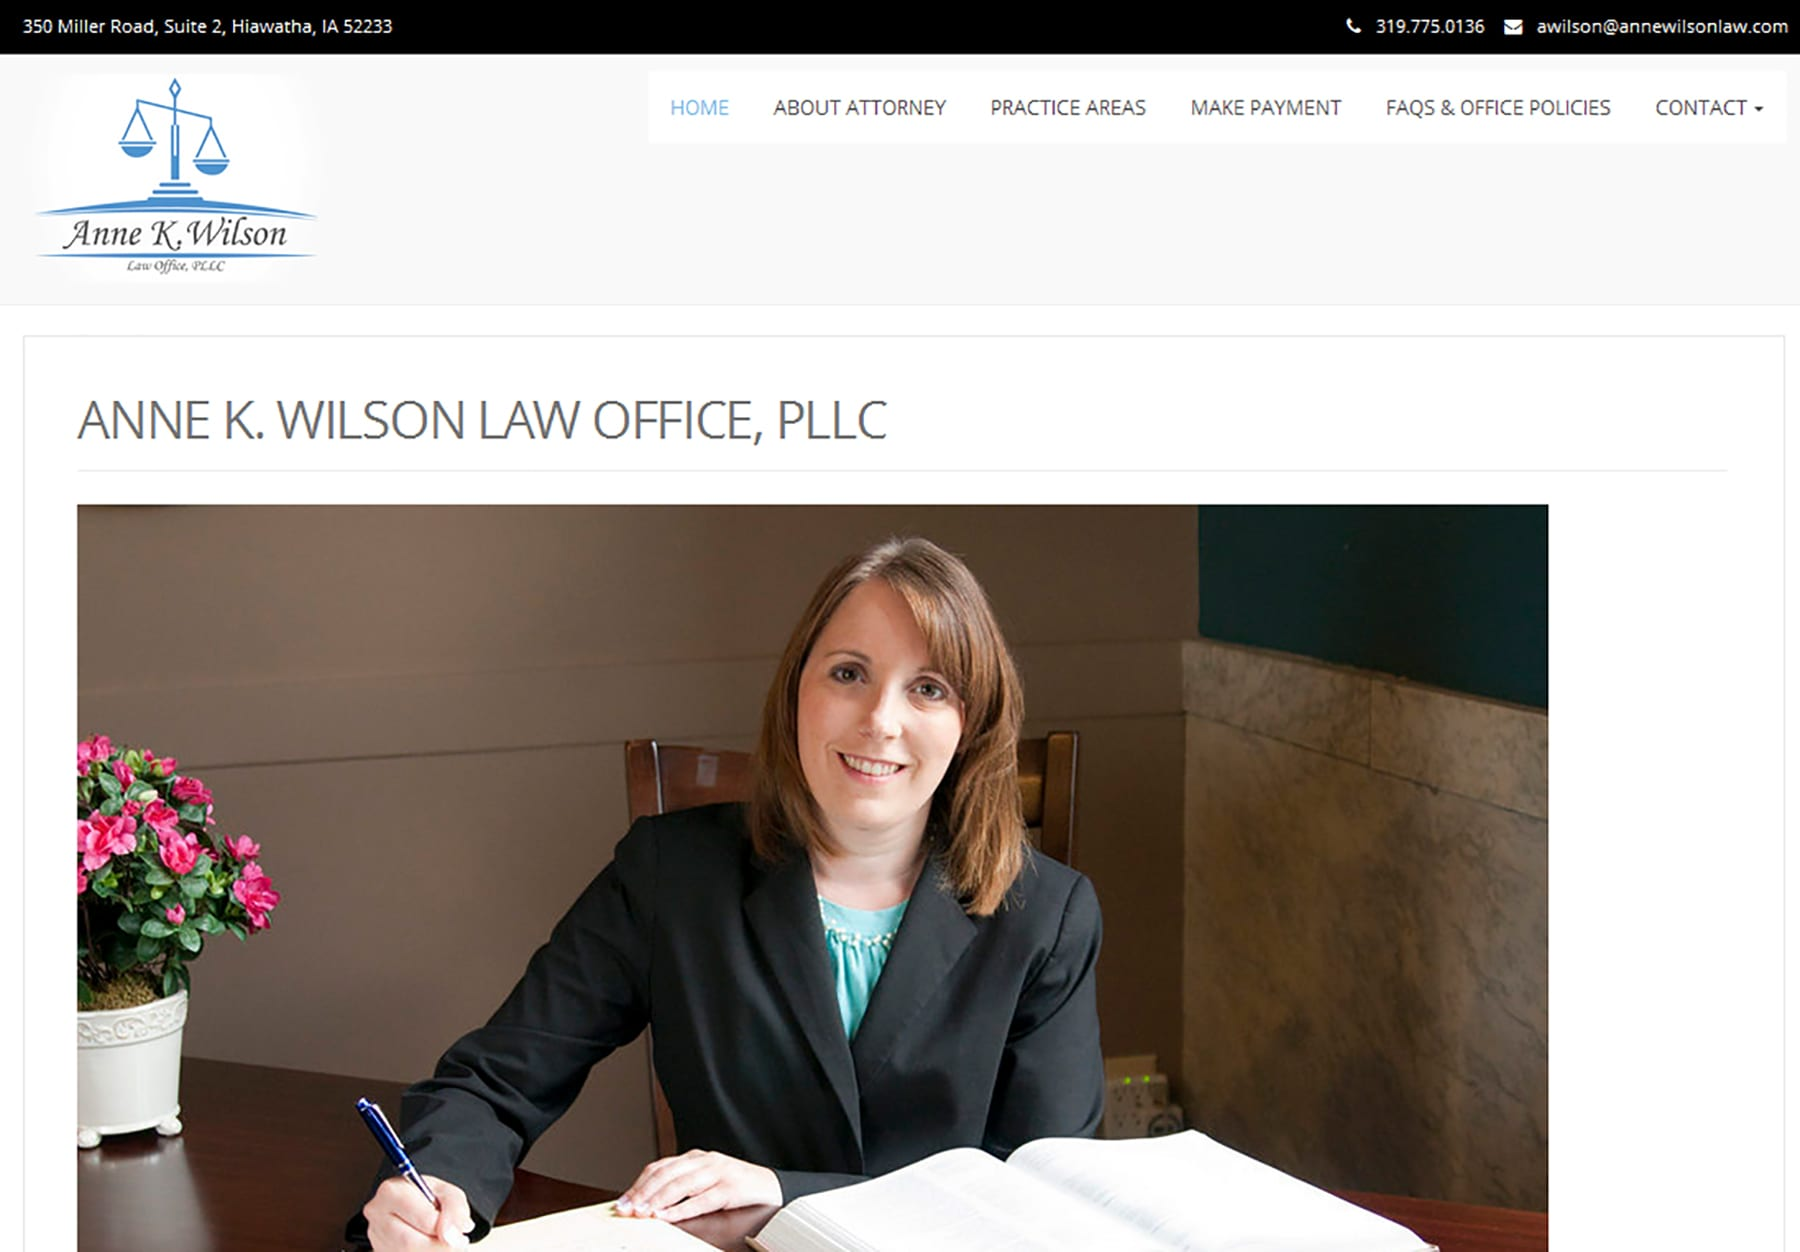 law office website design, hosting